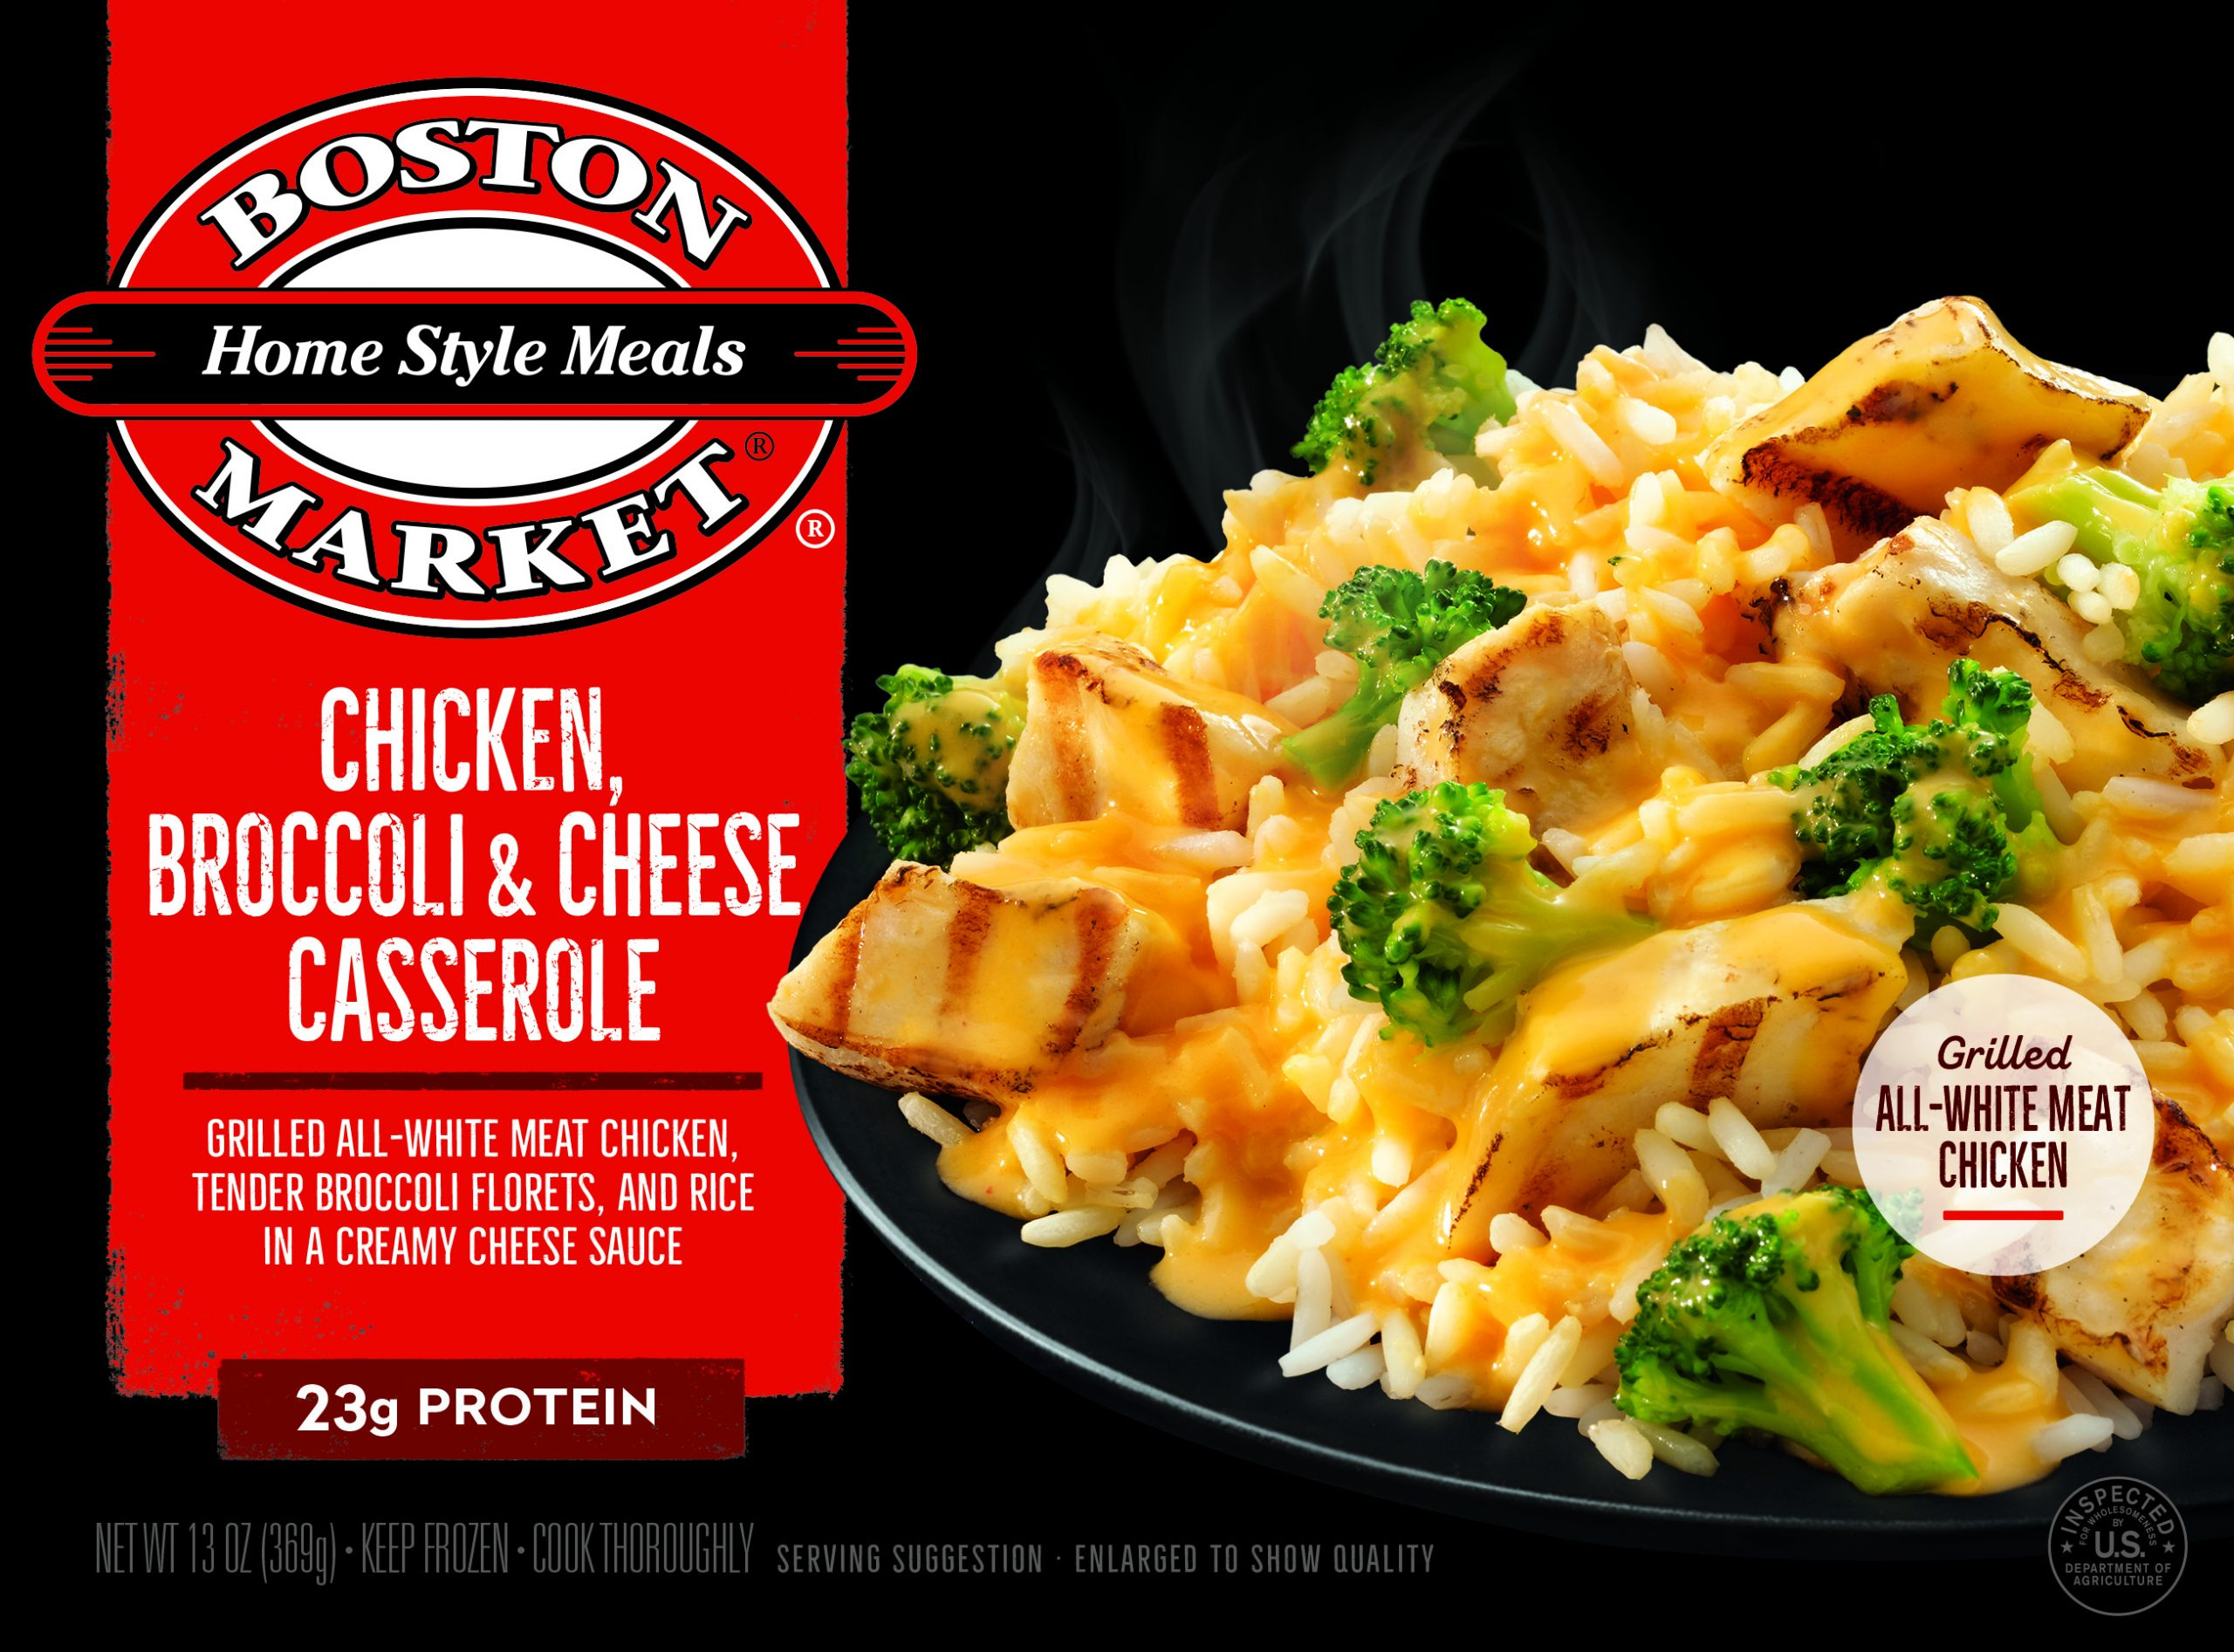 Chicken, Broccoli & Cheese Casserole box